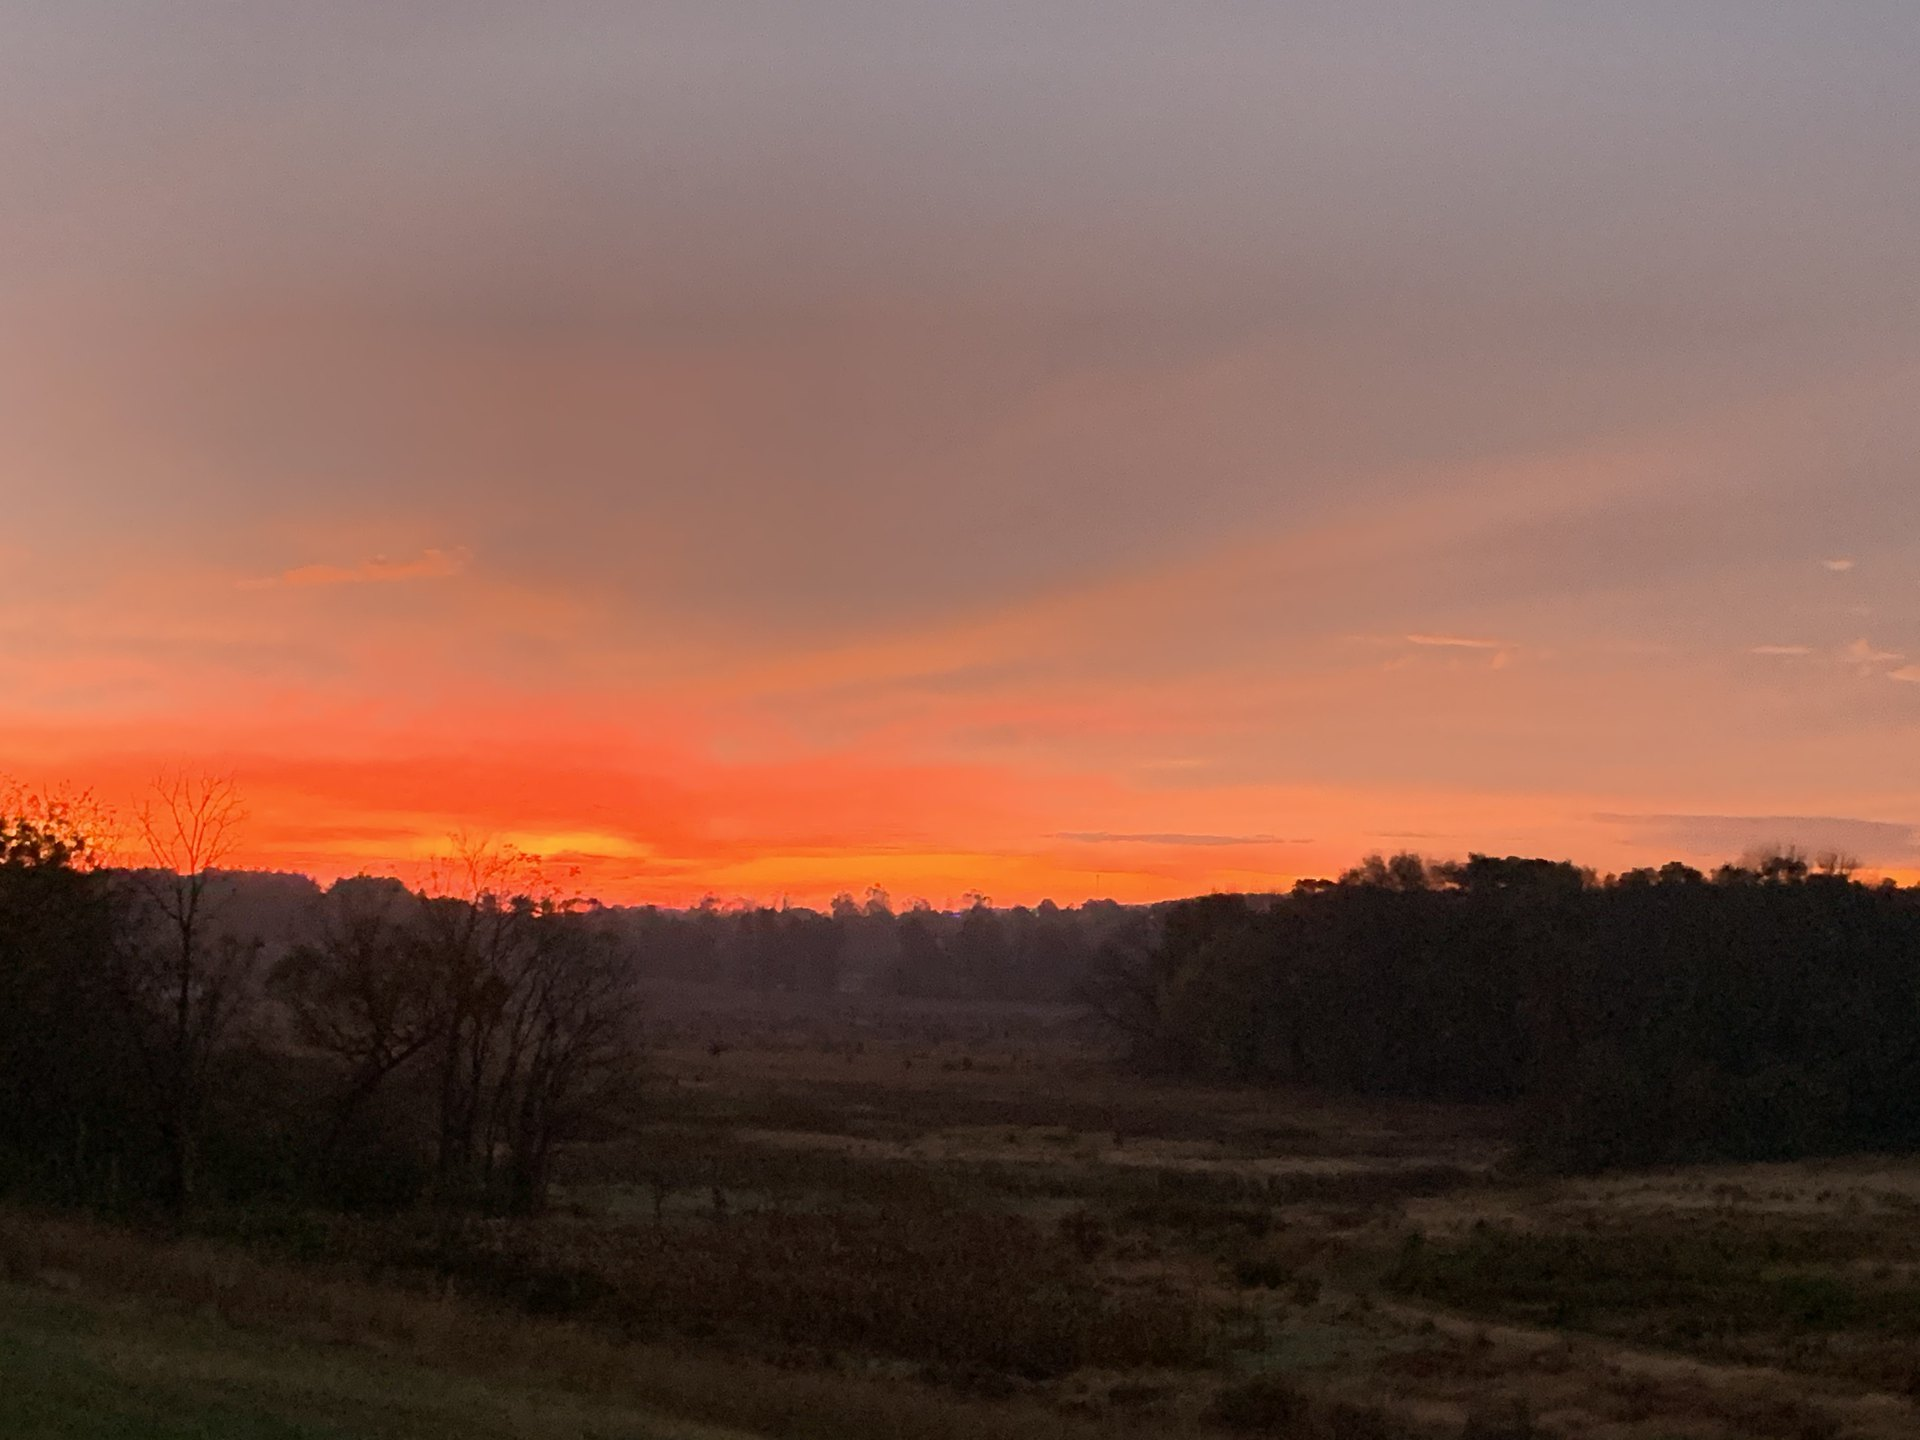 Revelation 9 NASB.  A fiery red sky at sunrise over a large, open field.